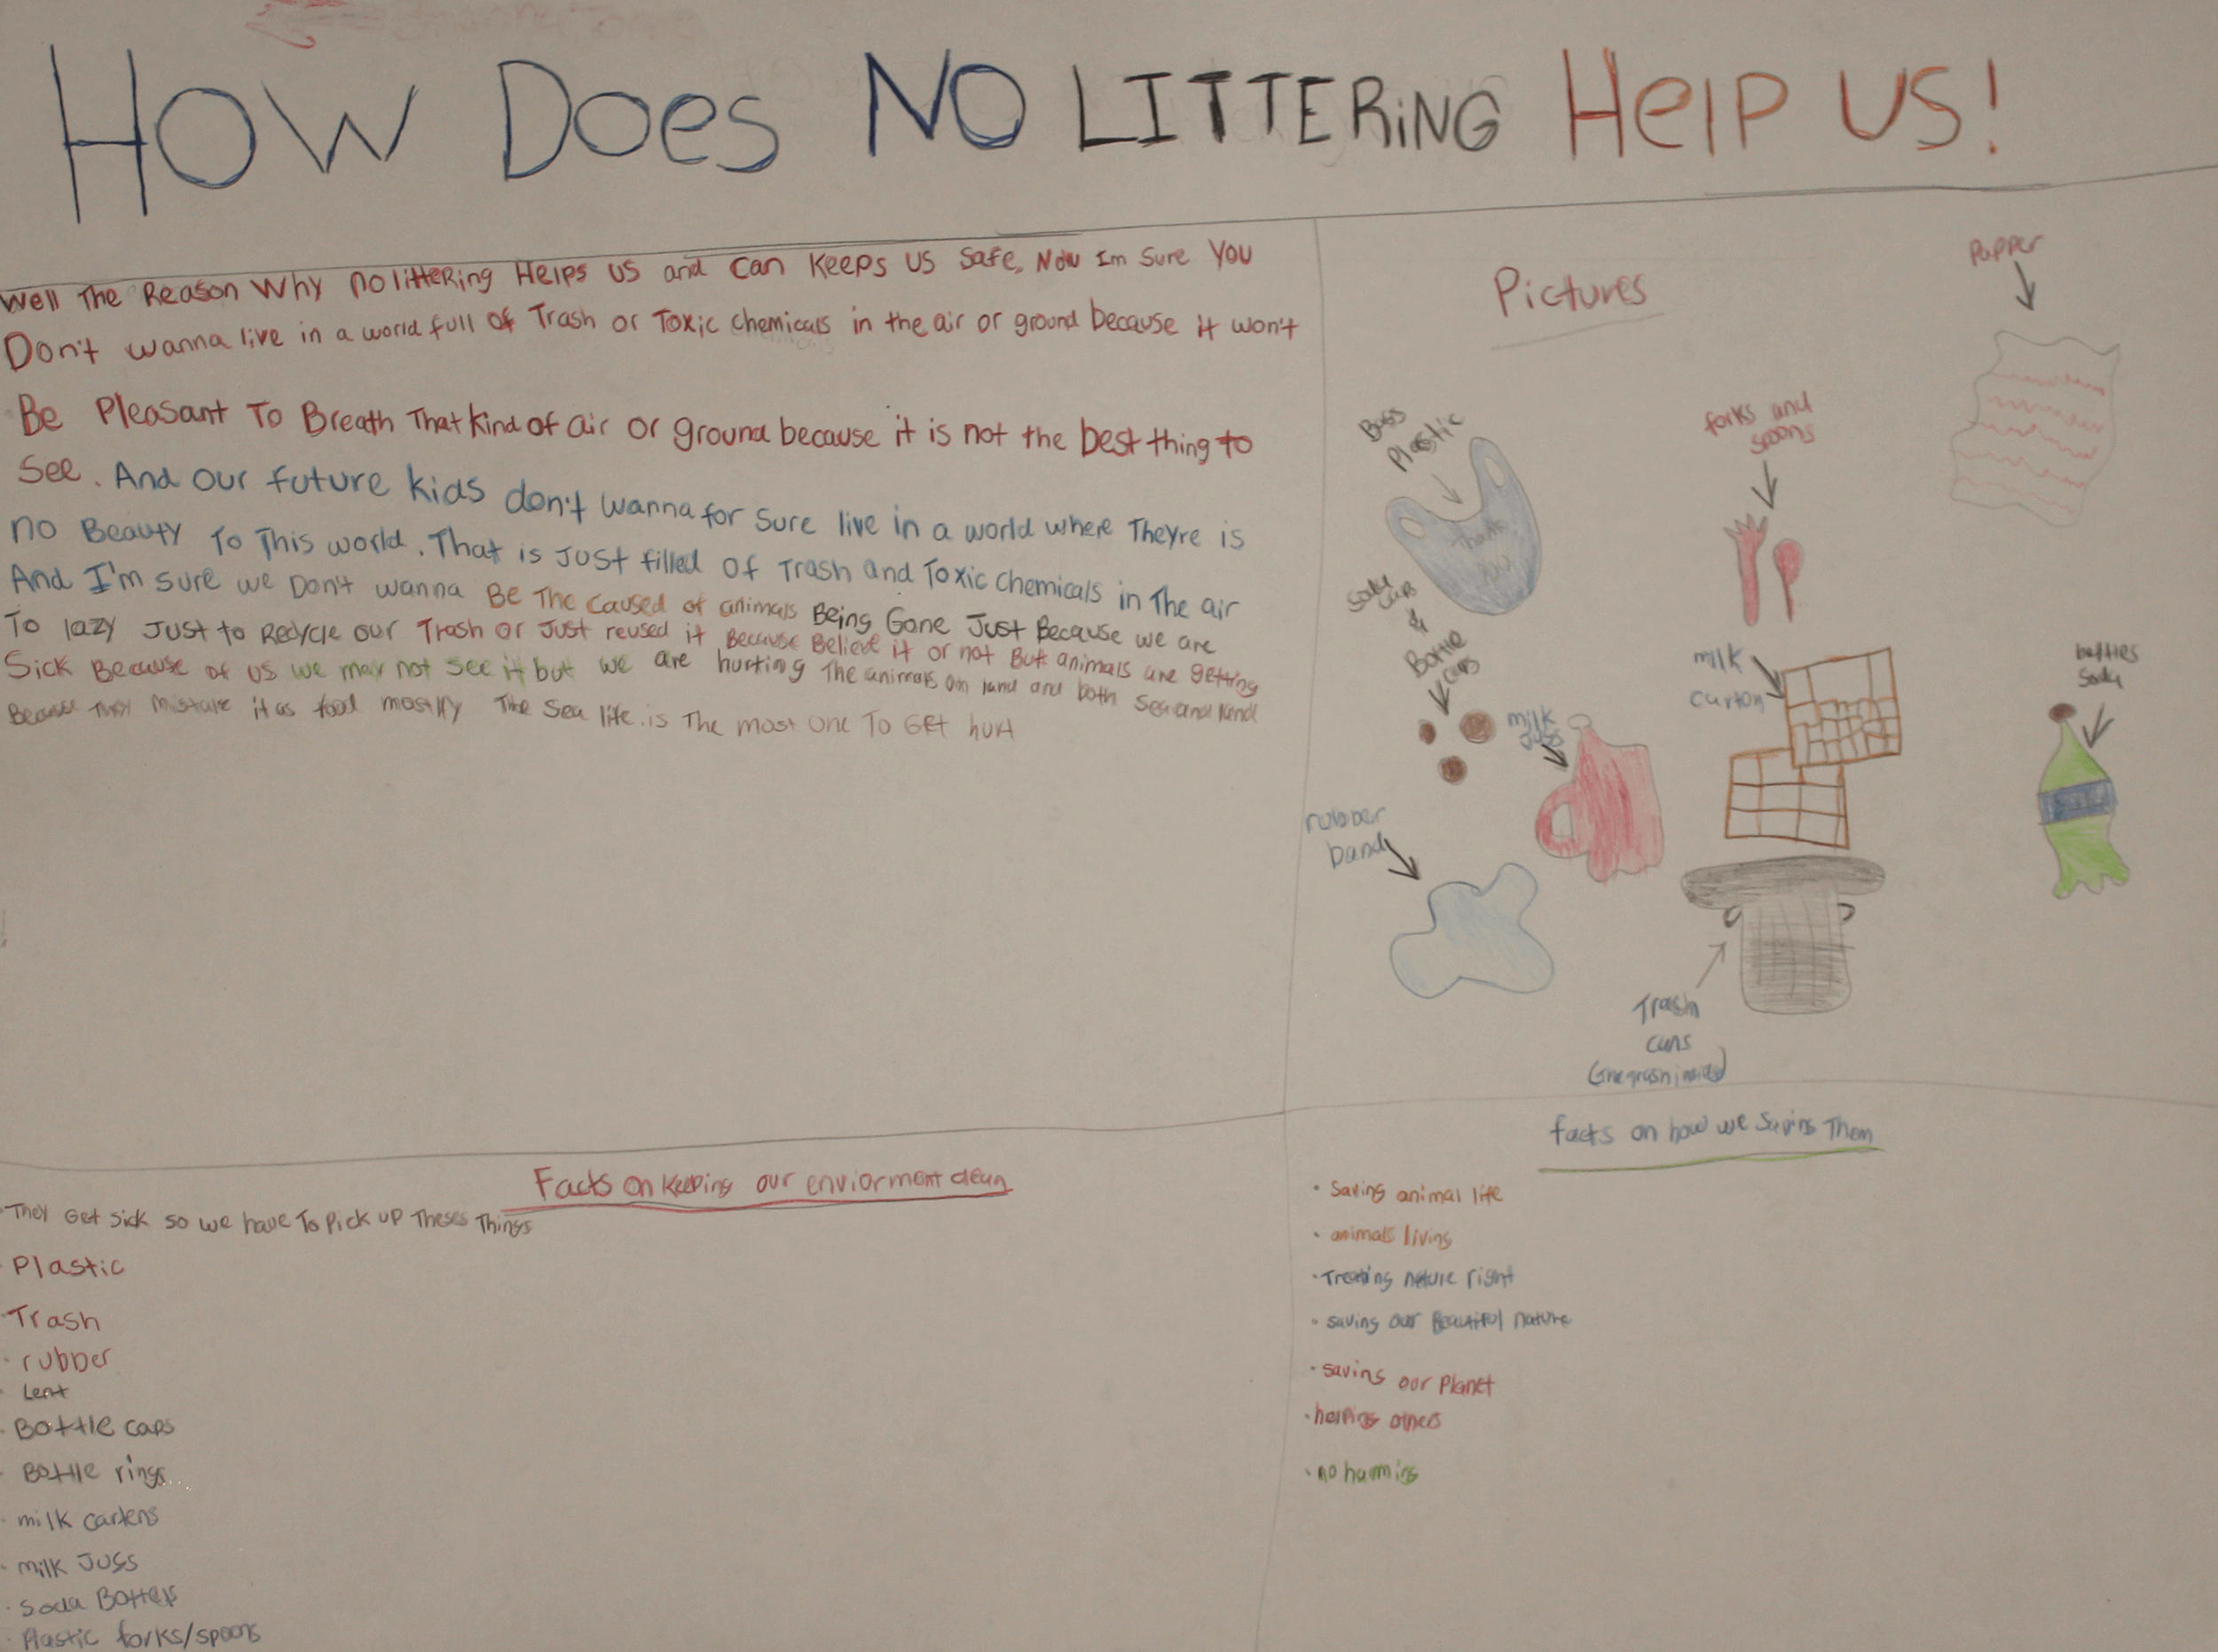 A poster listing benefits of anti-littering laws including illustrated examples